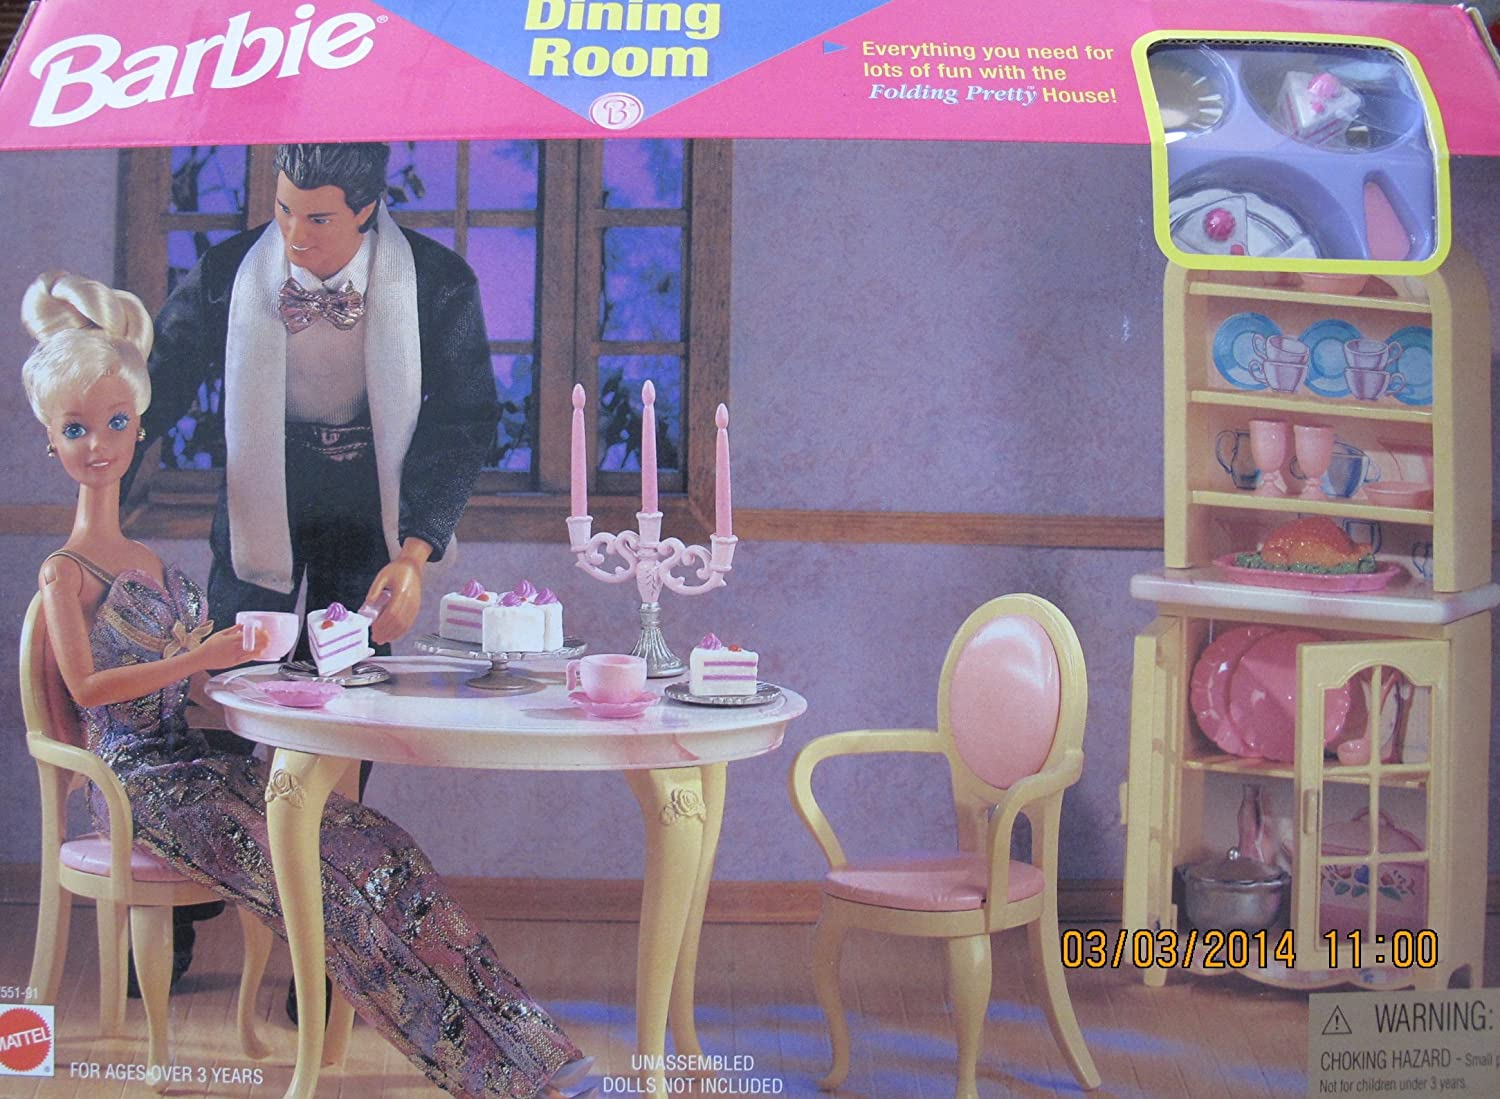 Sensational Barbie Dining Room Homswet Download Free Architecture Designs Itiscsunscenecom